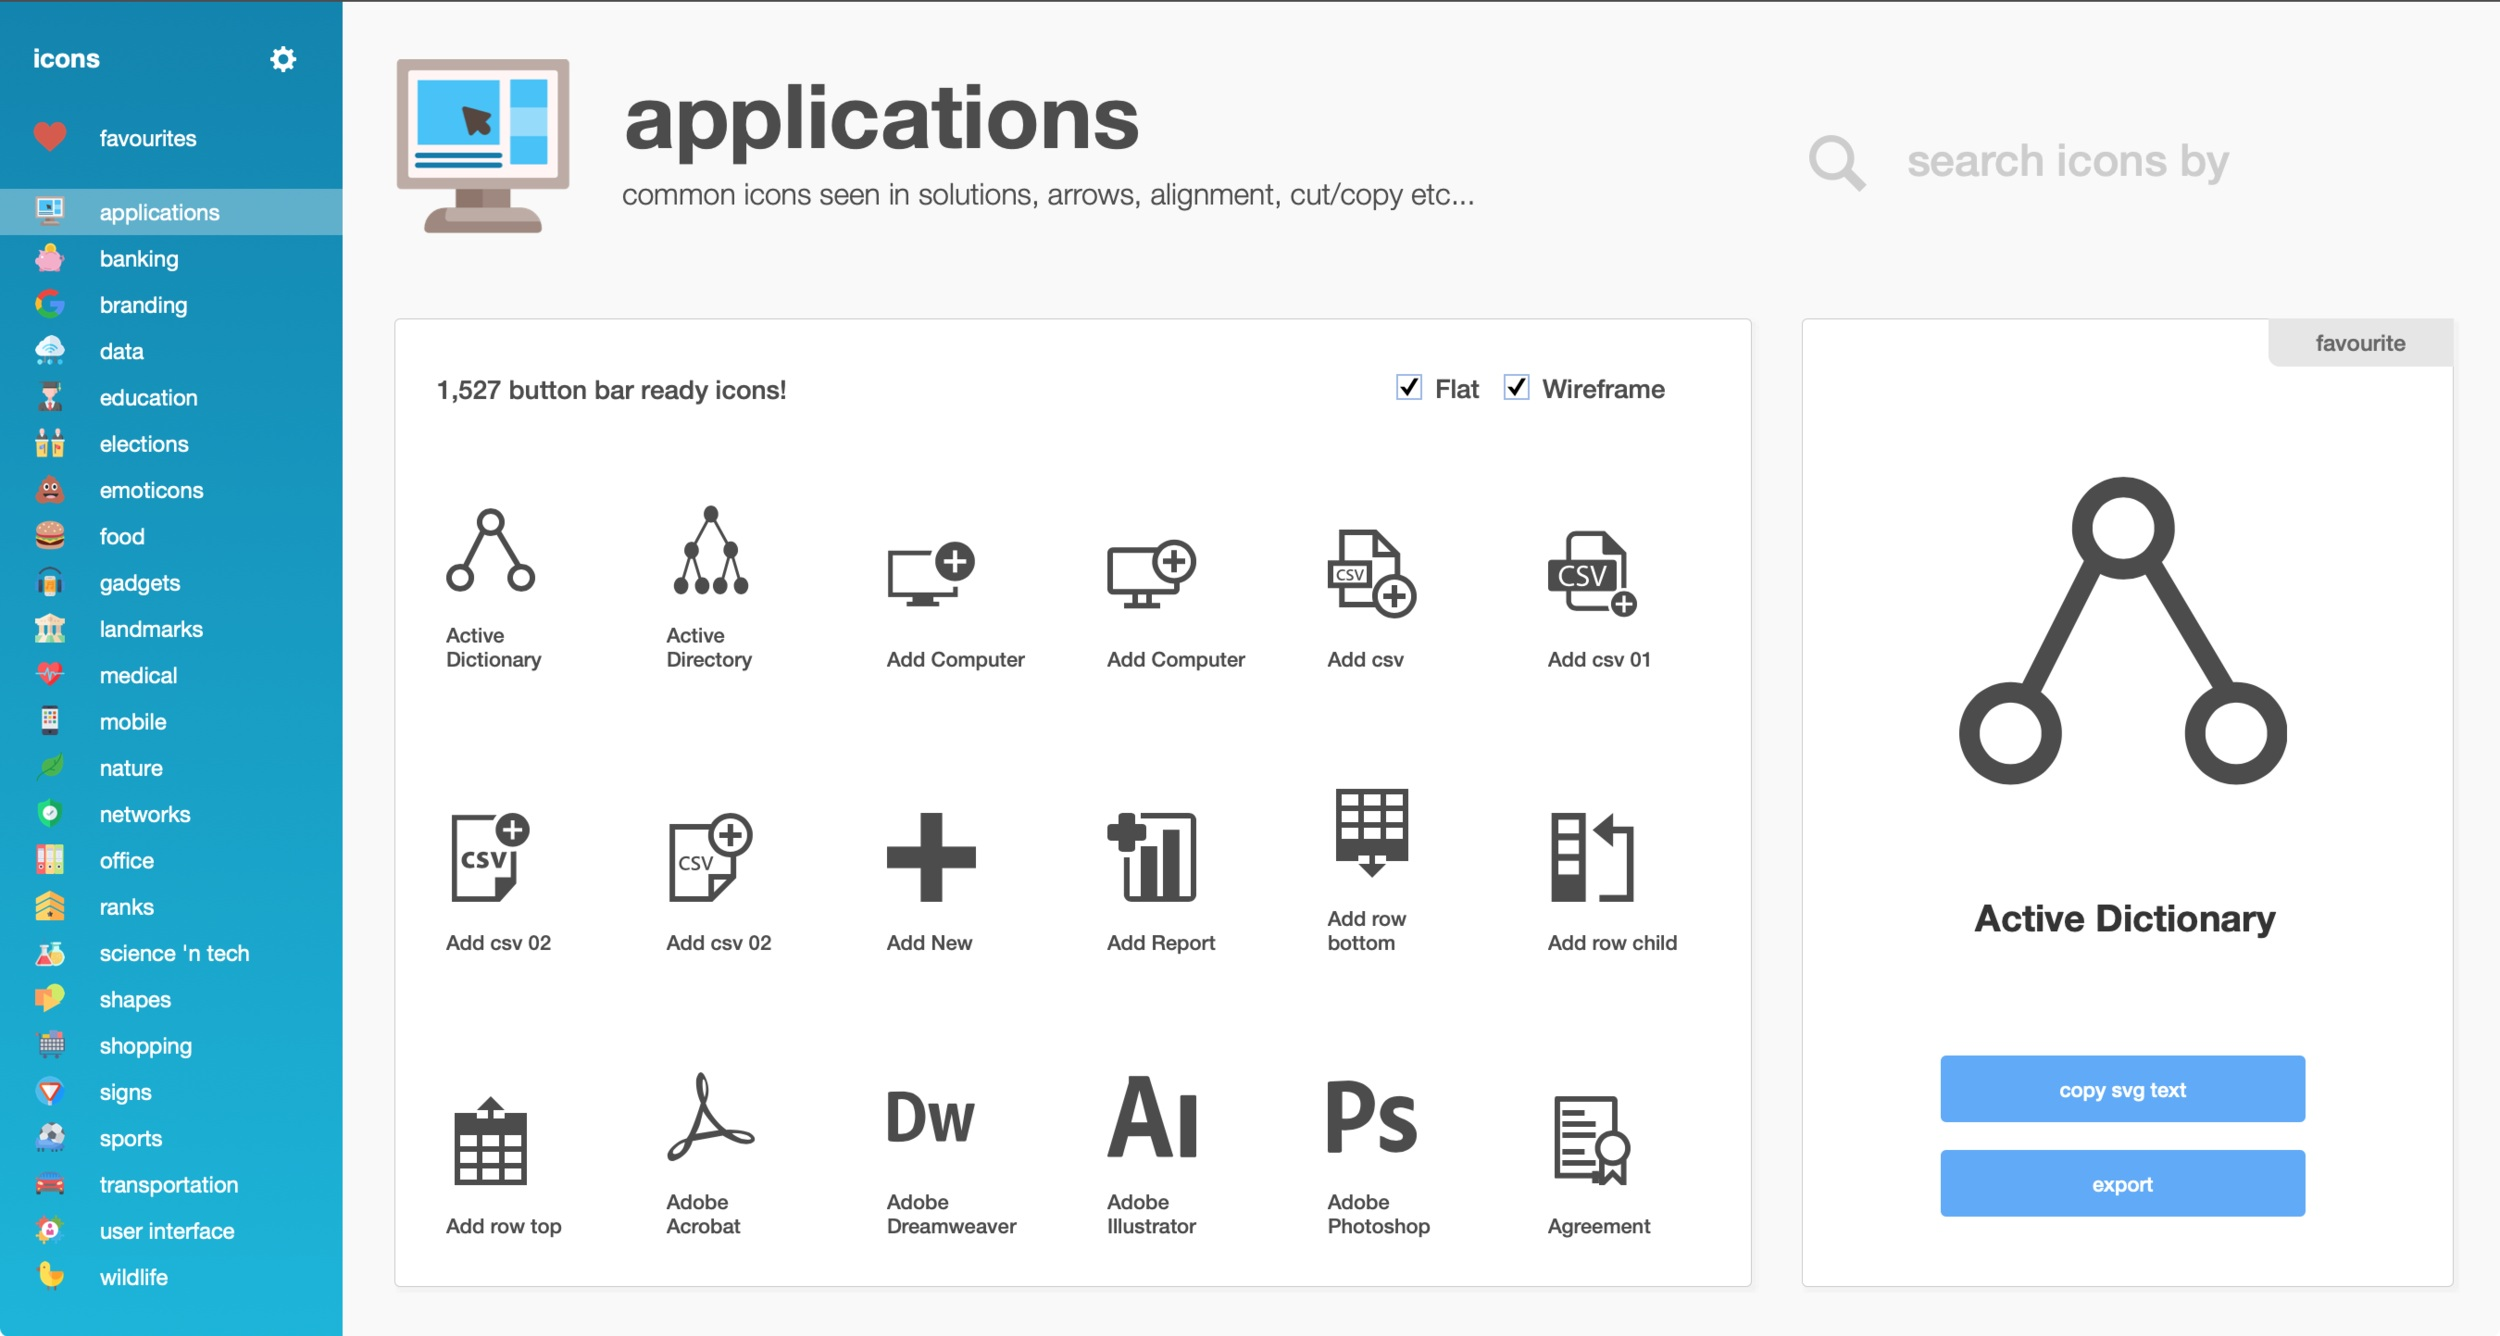 features_icons